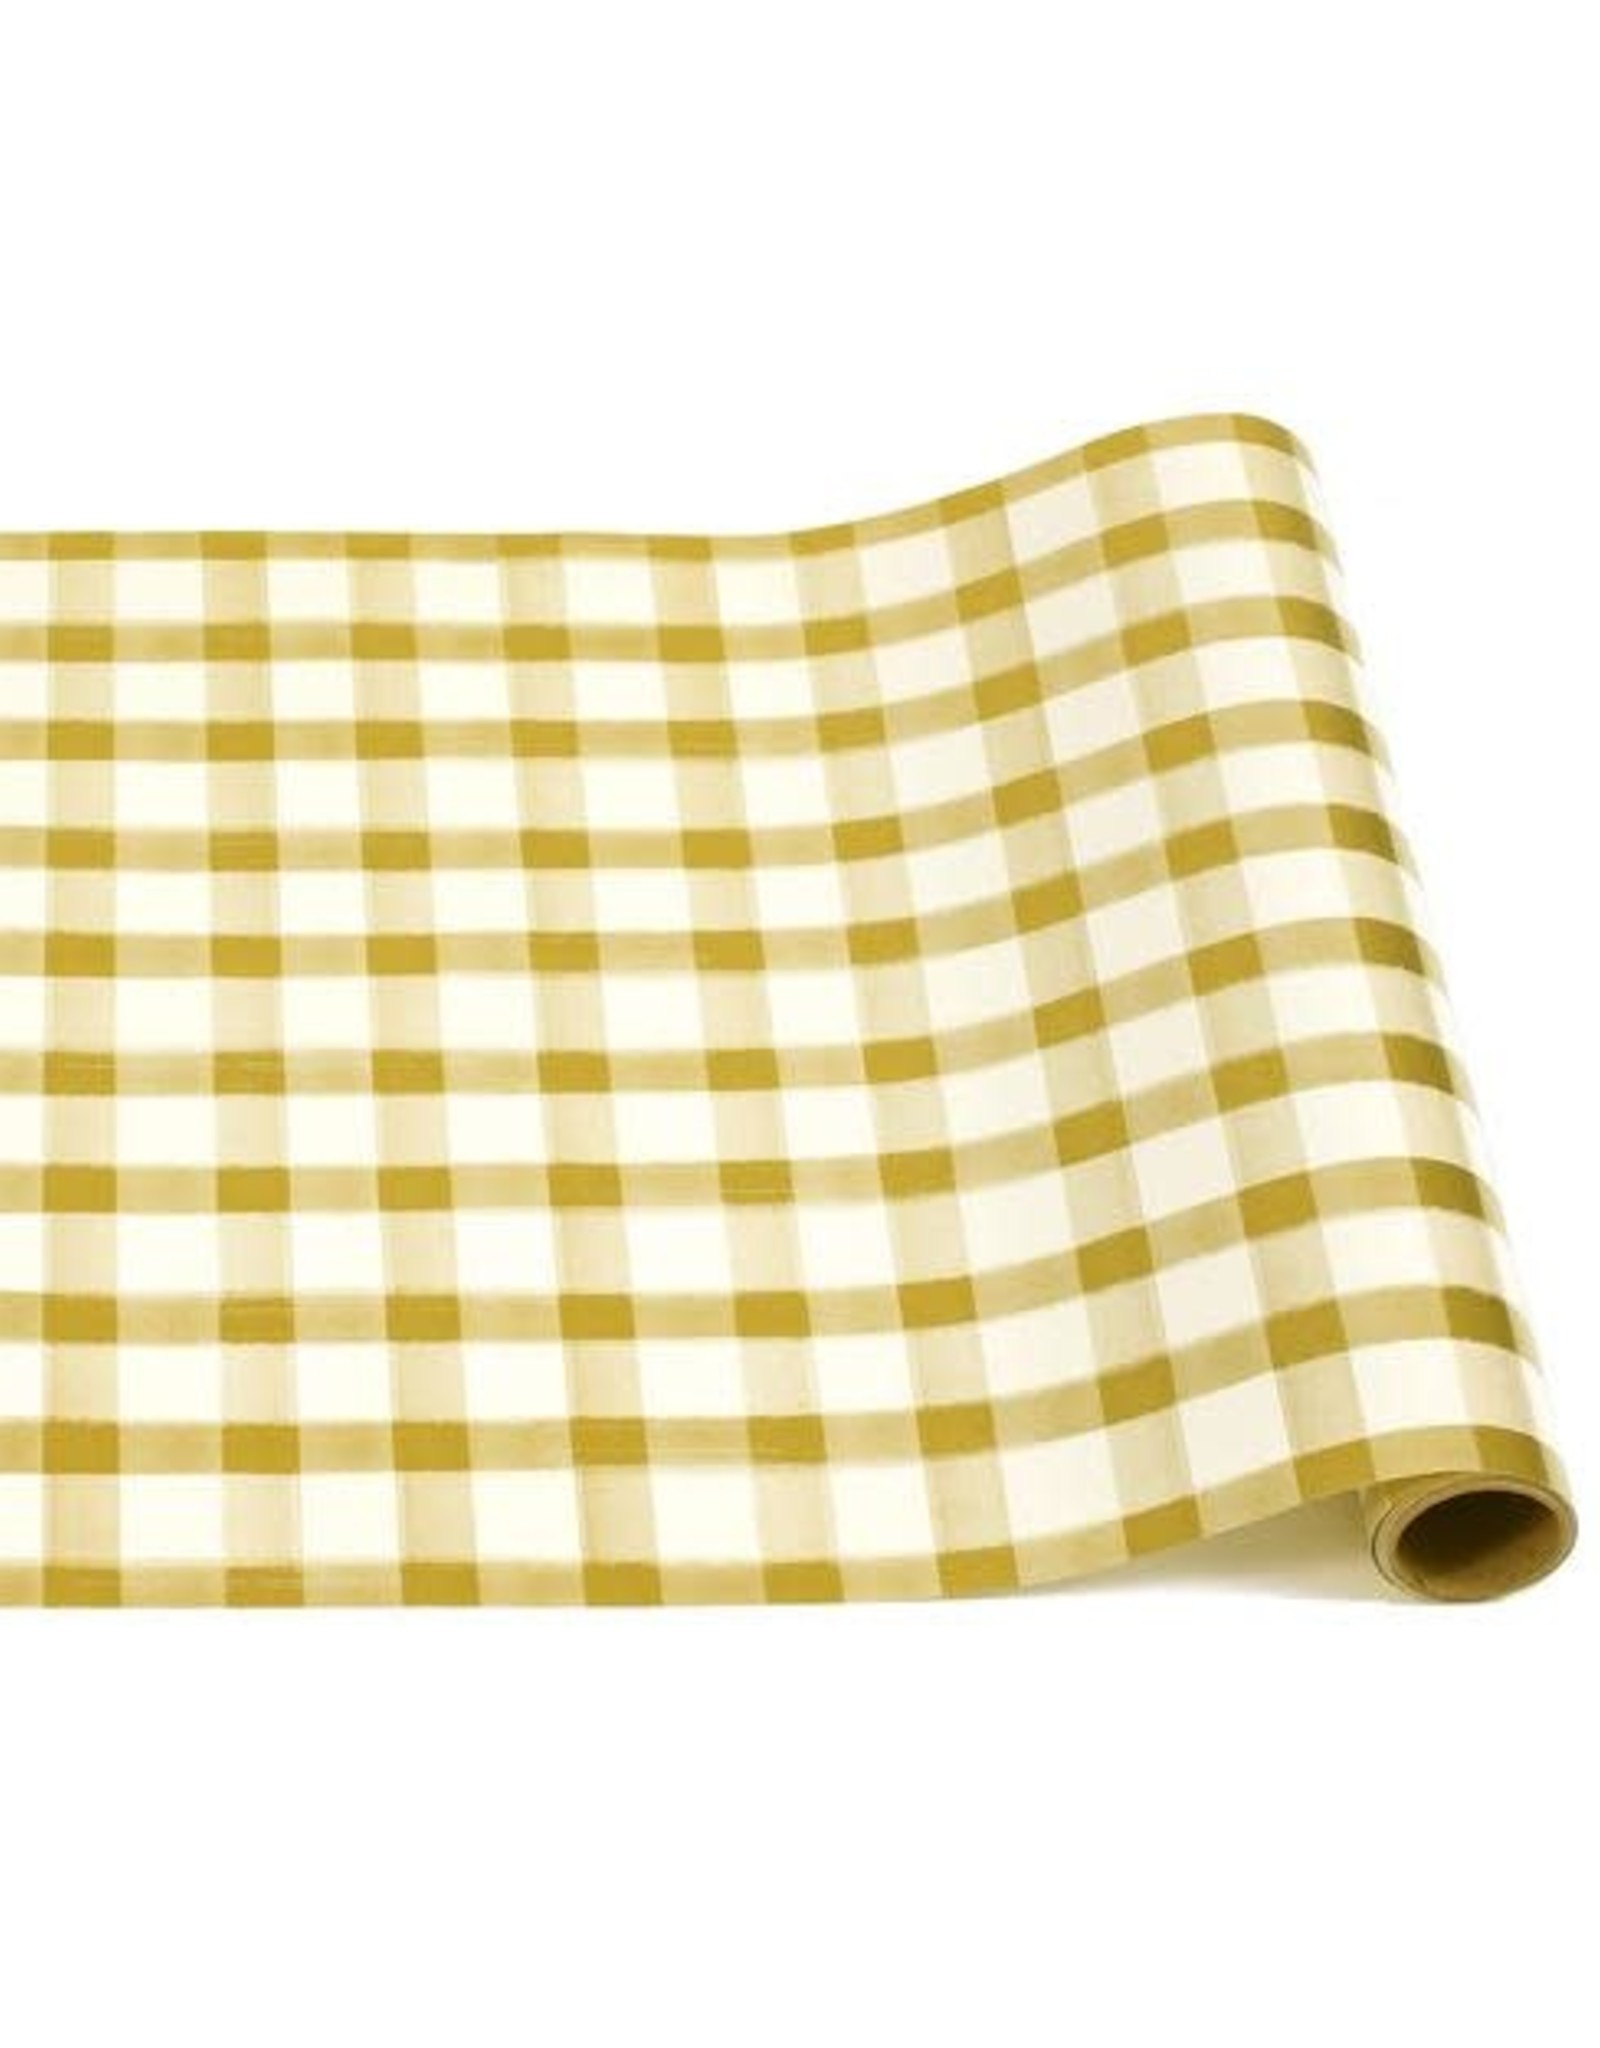 "Home Gold Painted Check Runner - 20""x25'"